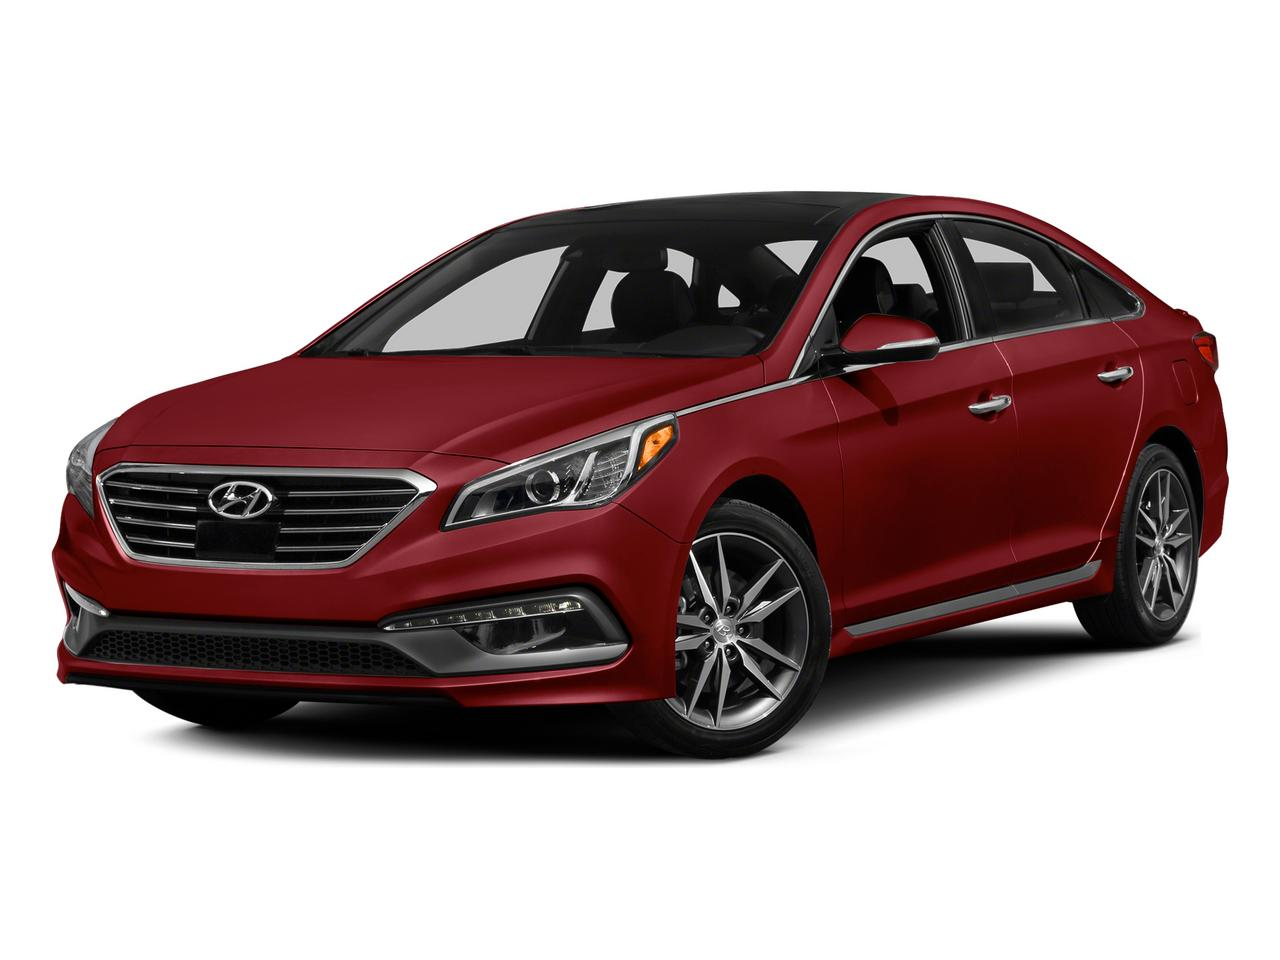 2015 Hyundai Sonata Vehicle Photo in Austin, TX 78759